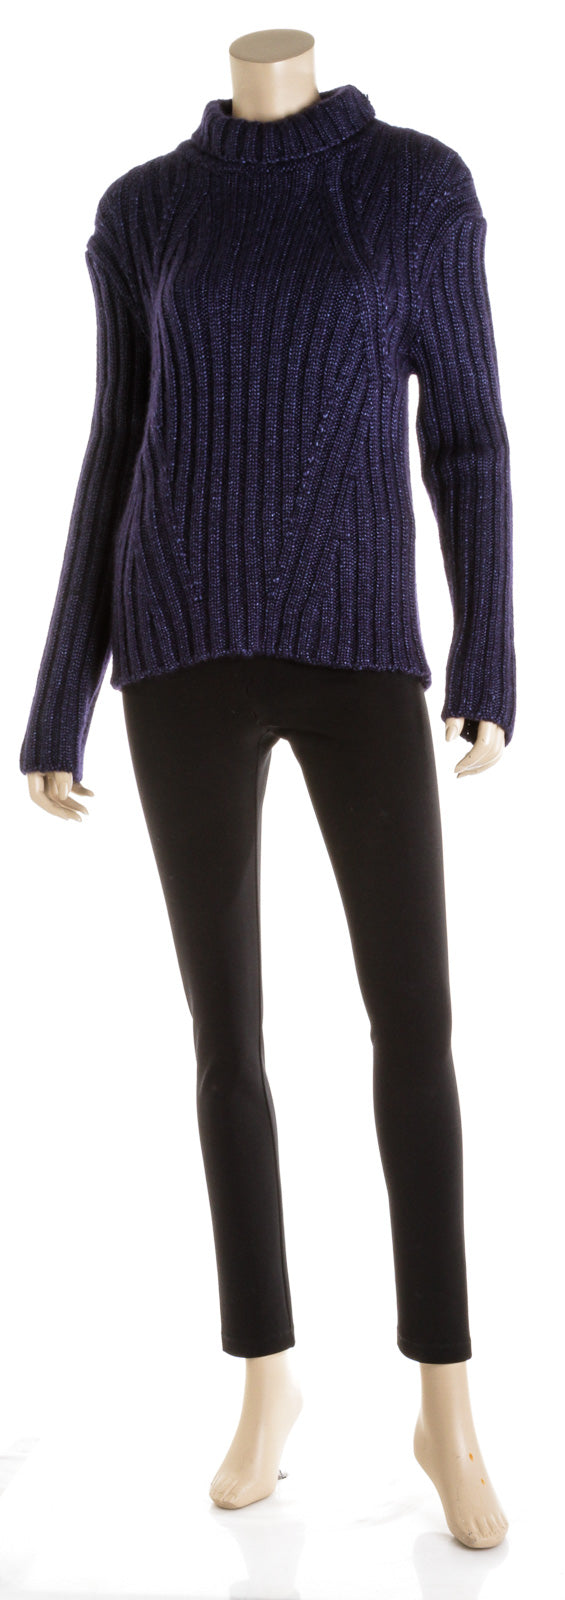 Tom Ford Navy Blue Mohair & Cashmere Turtleneck ( Size L )